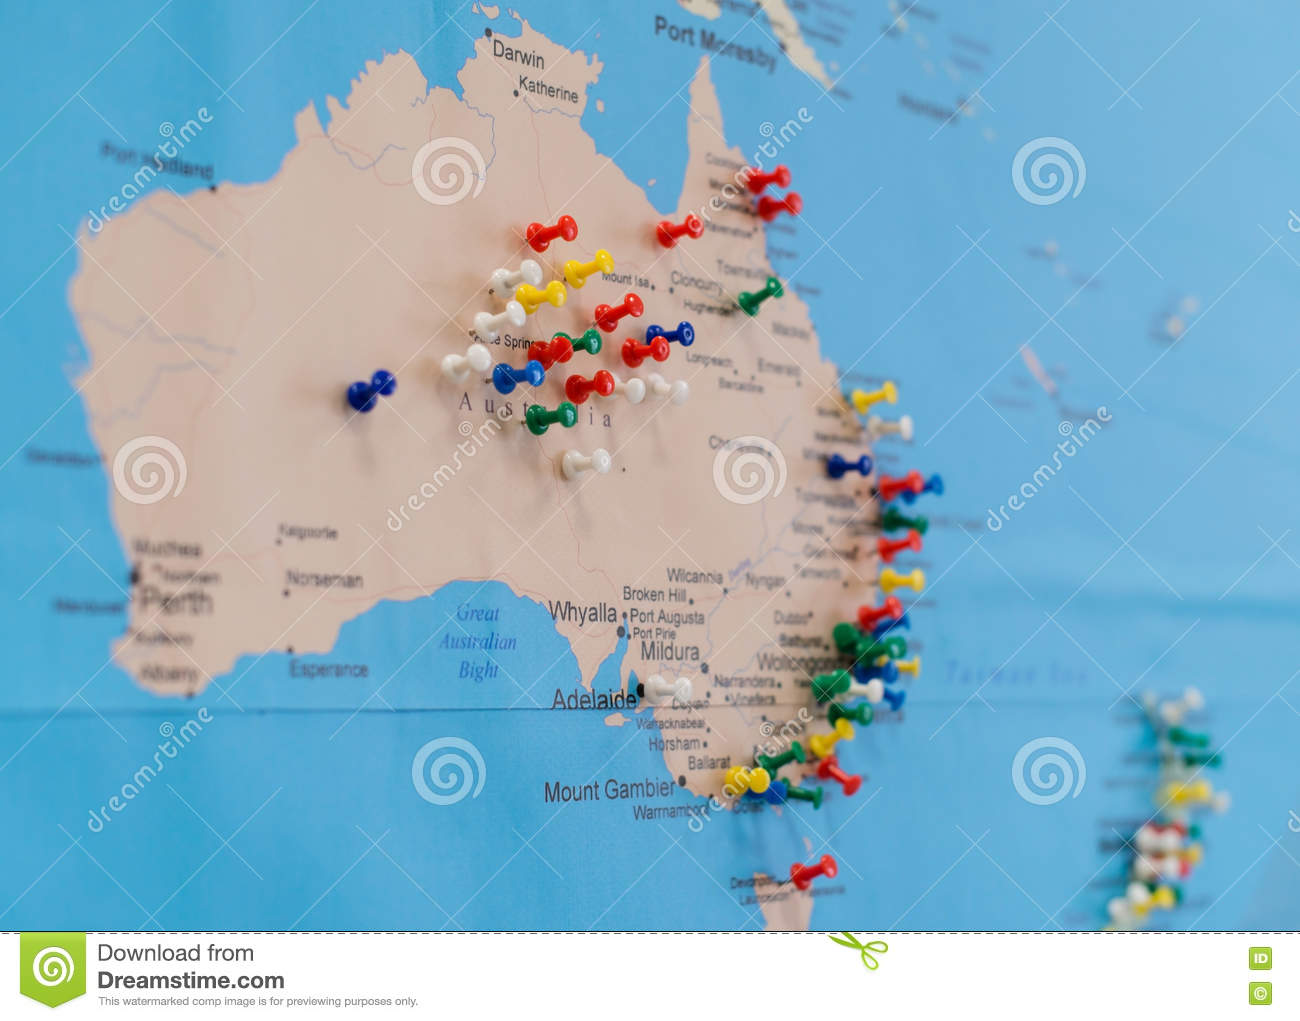 Buttons on australia on the world map stock image image of button buttons on australia on the world map gumiabroncs Images